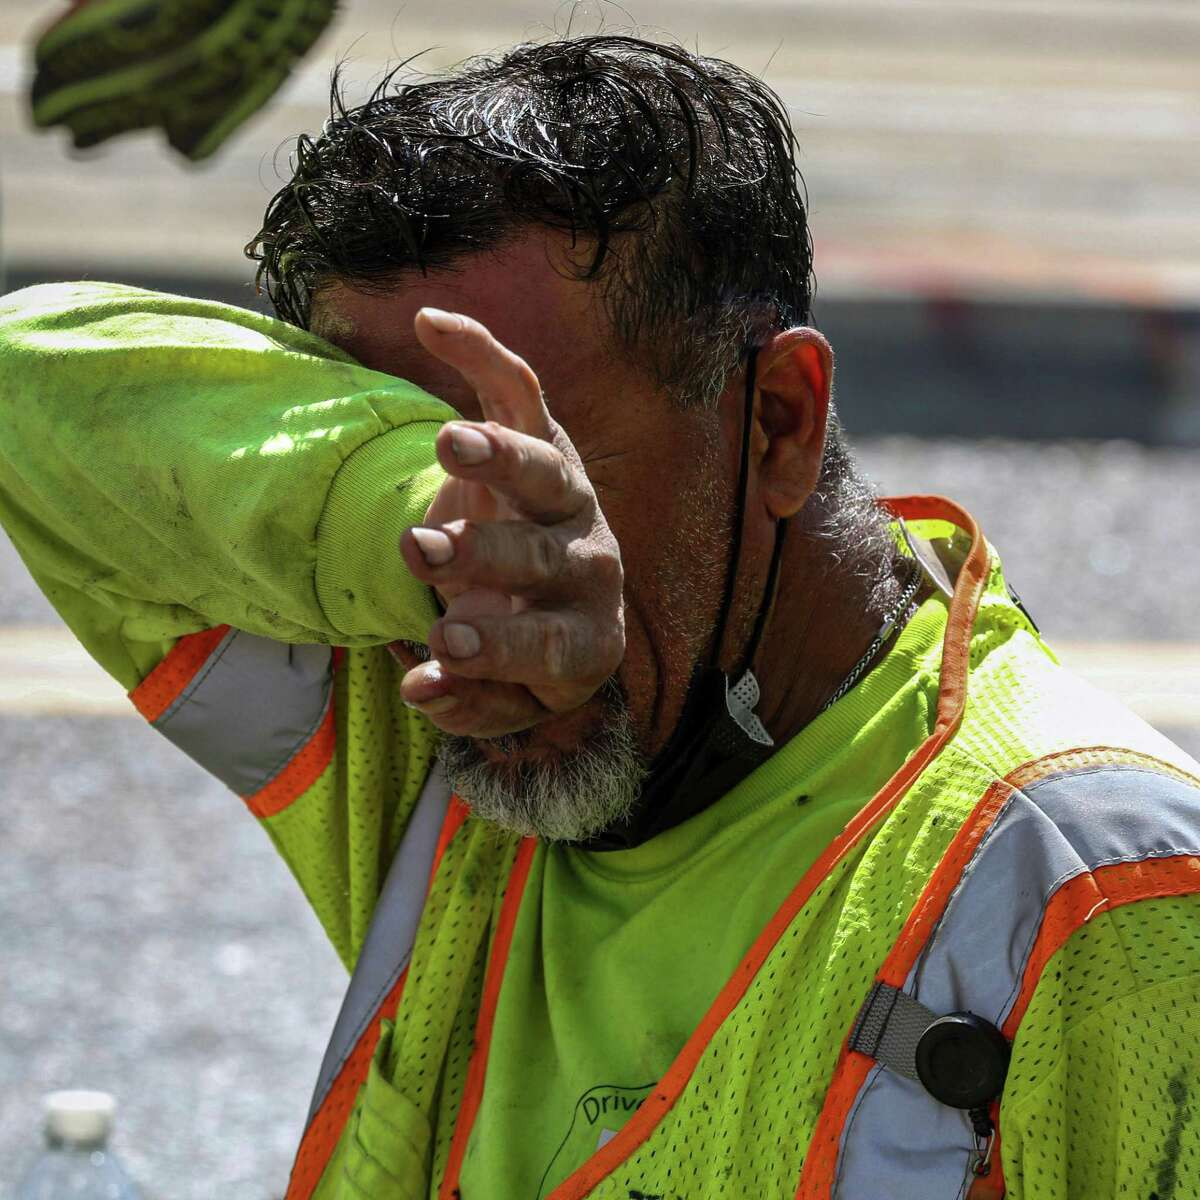 The National Weather Service is issuing heat warnings for most of the Bay Area and surrounding counties for the next several days.